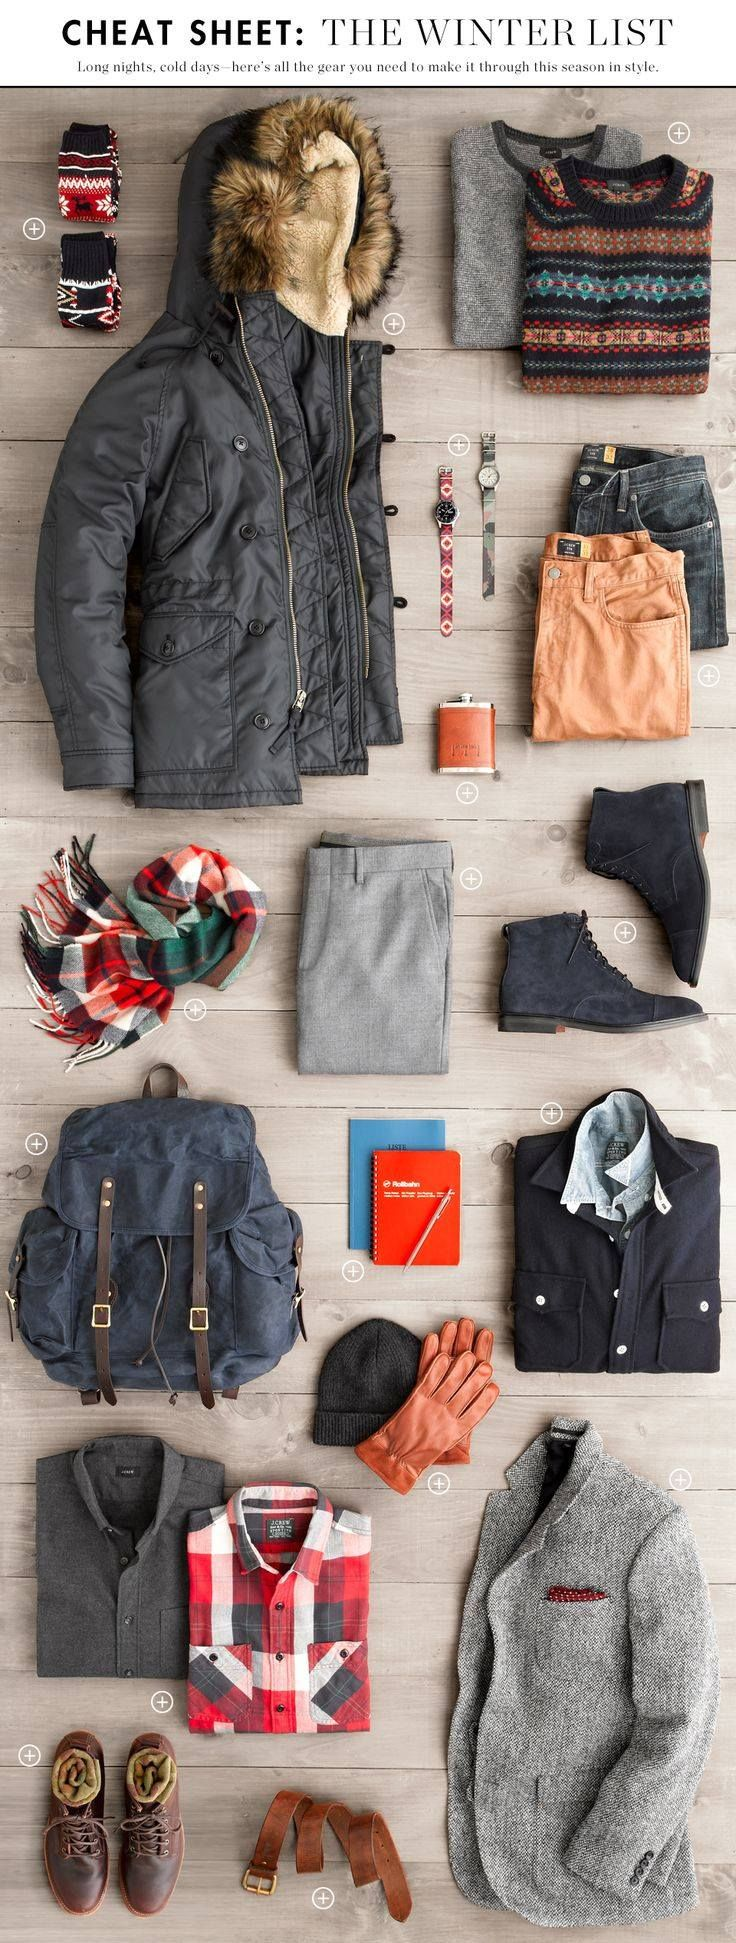 best looks images on pinterest man style menus clothing and